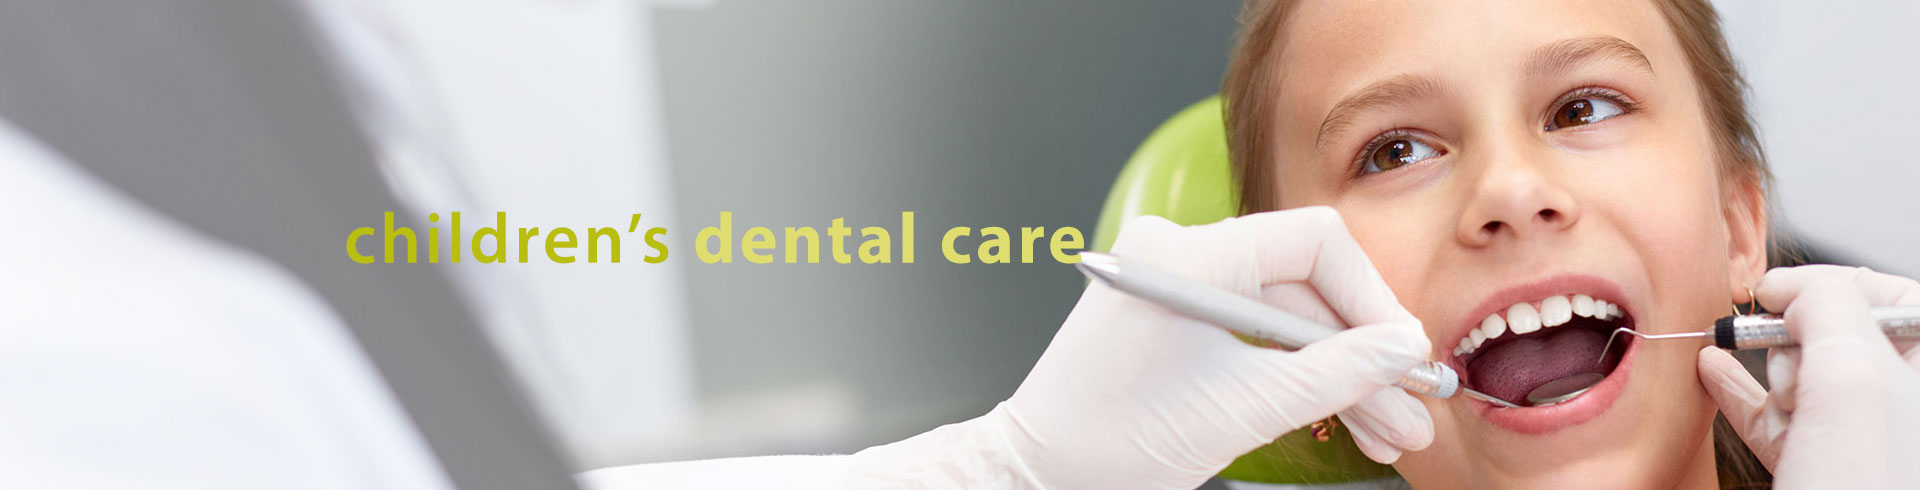 Children's Dental Care at Hookstone Dental